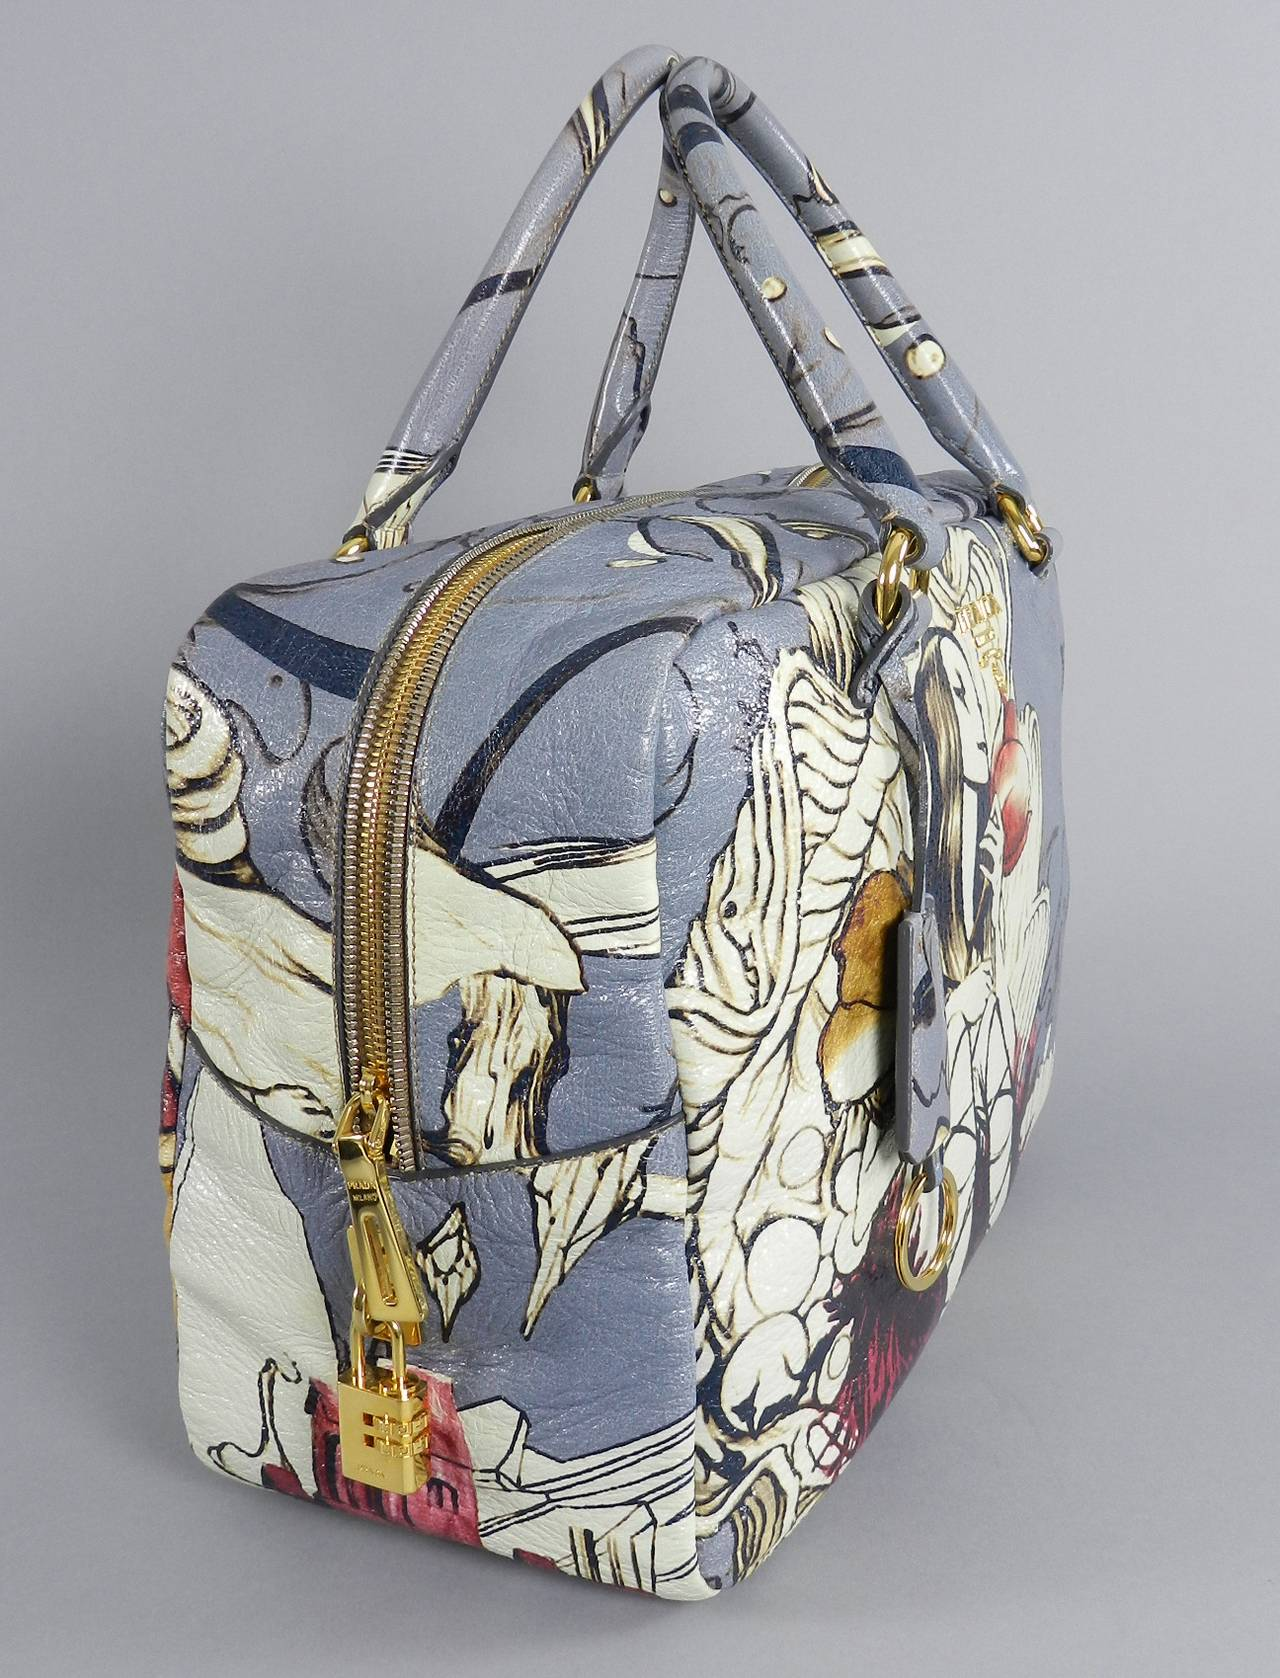 de6643d079b2 Prada Fairy Bag - Limitied Edition James Jean For Sale 1